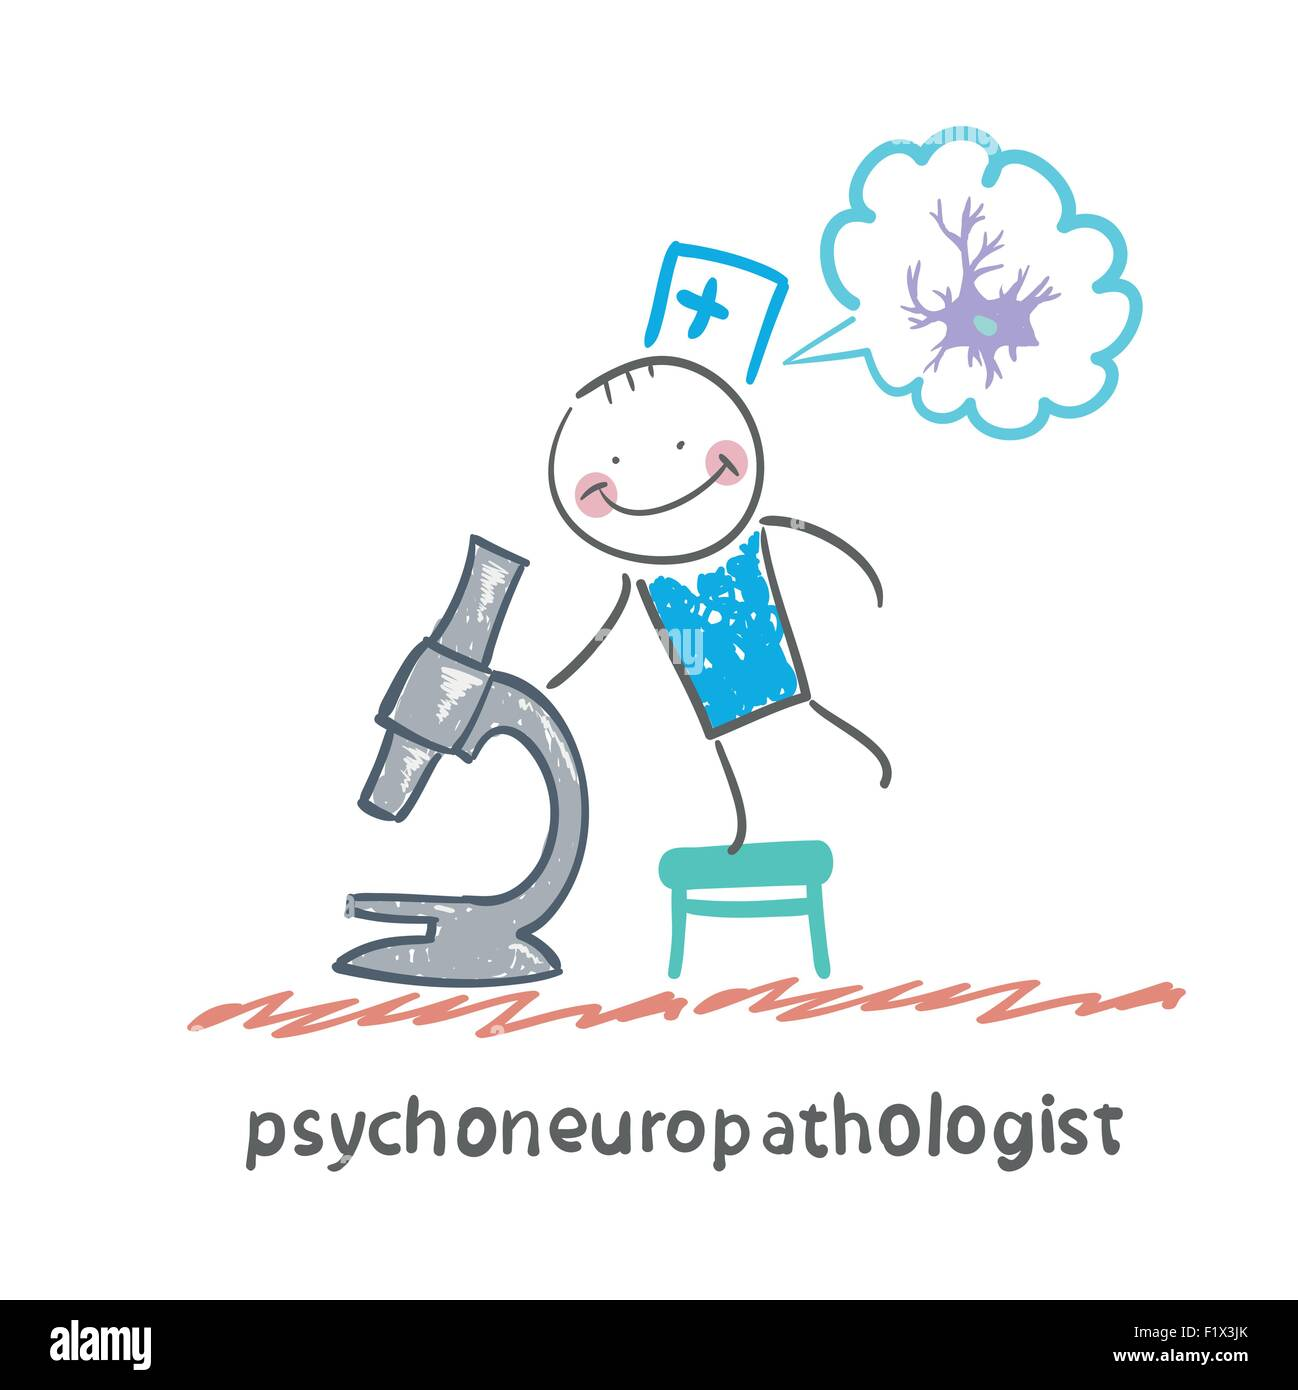 psychoneuropathologist  looking through a microscope and thinks of nerve cells - Stock Vector